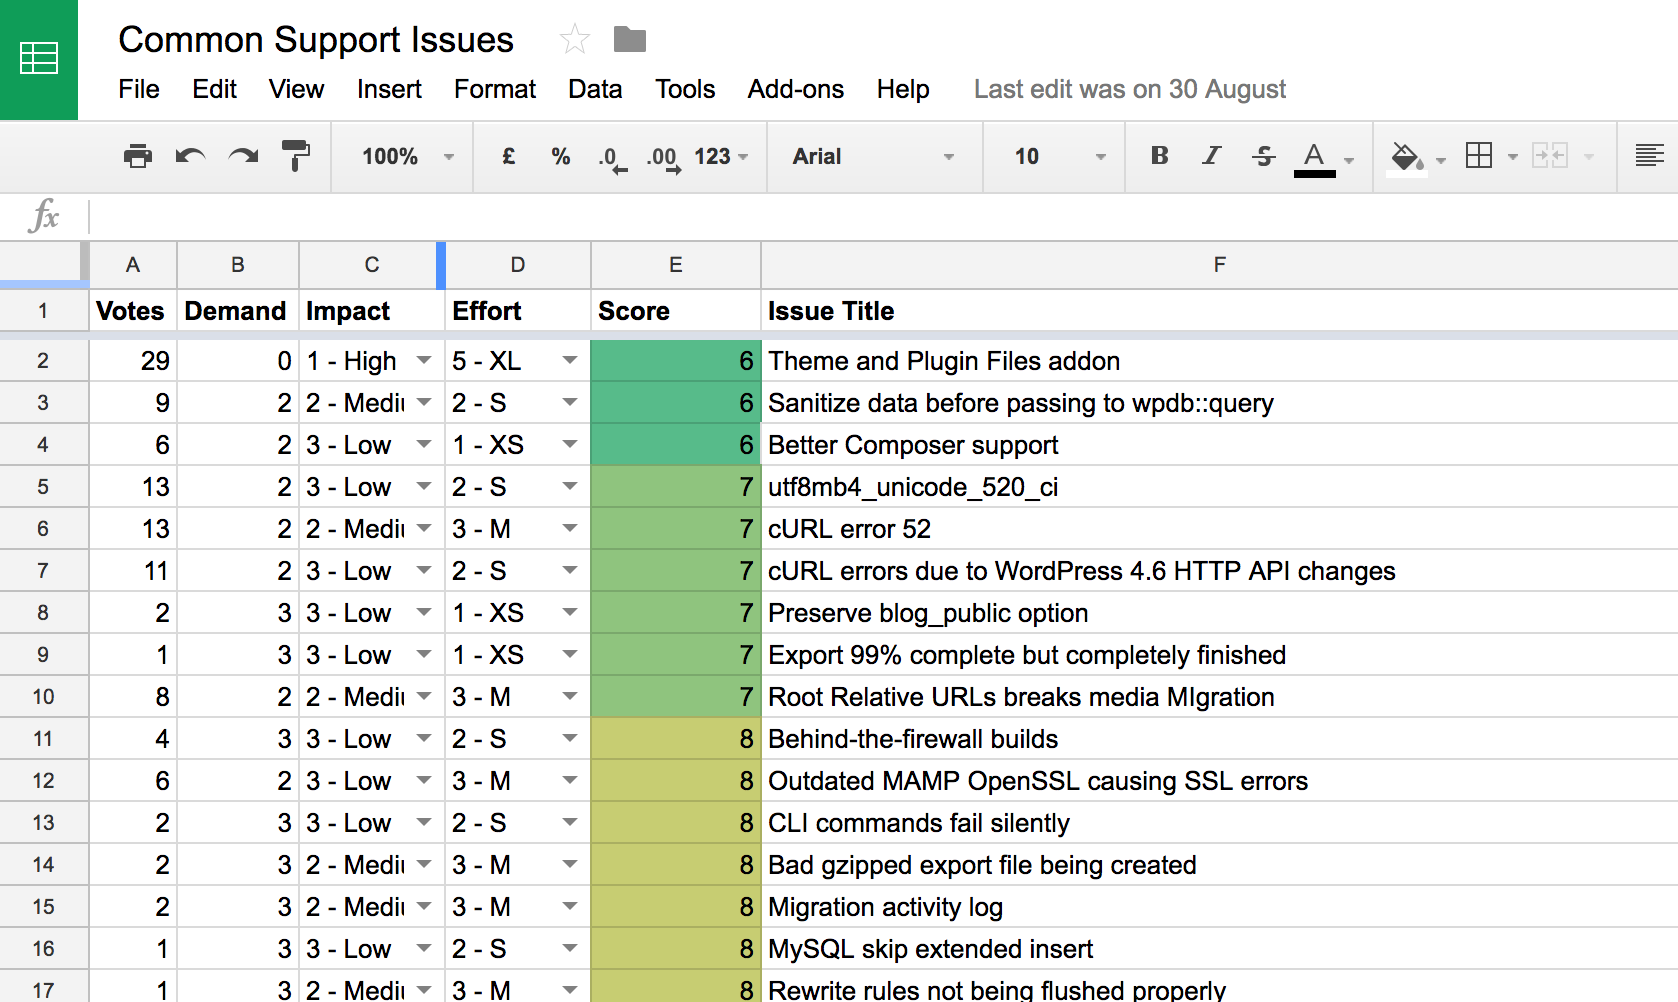 Screenshot of our Common Issues Spreadsheet